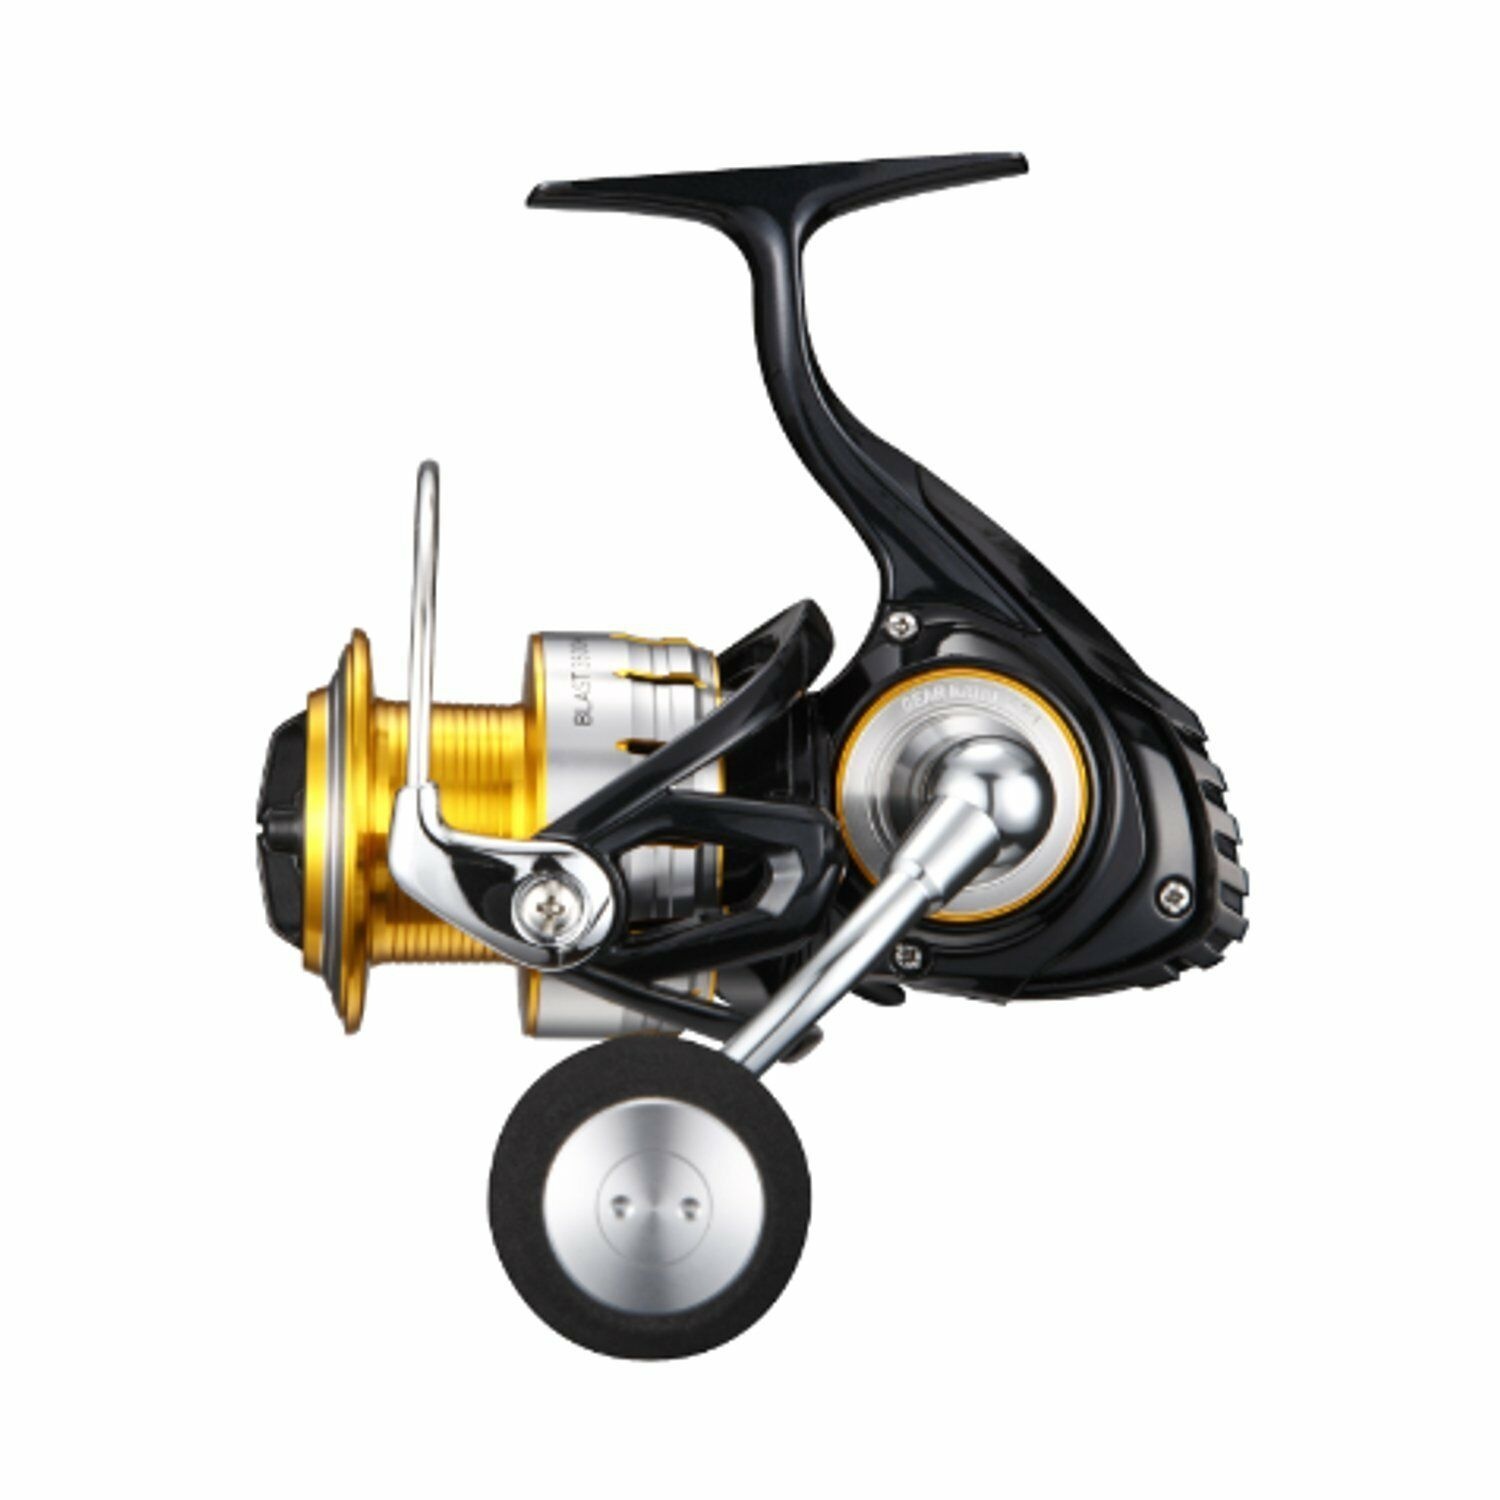 Daiwa 16 BLAST 4500H Spininng Reel Fishing Salt Water Fishing Reel New 92772e